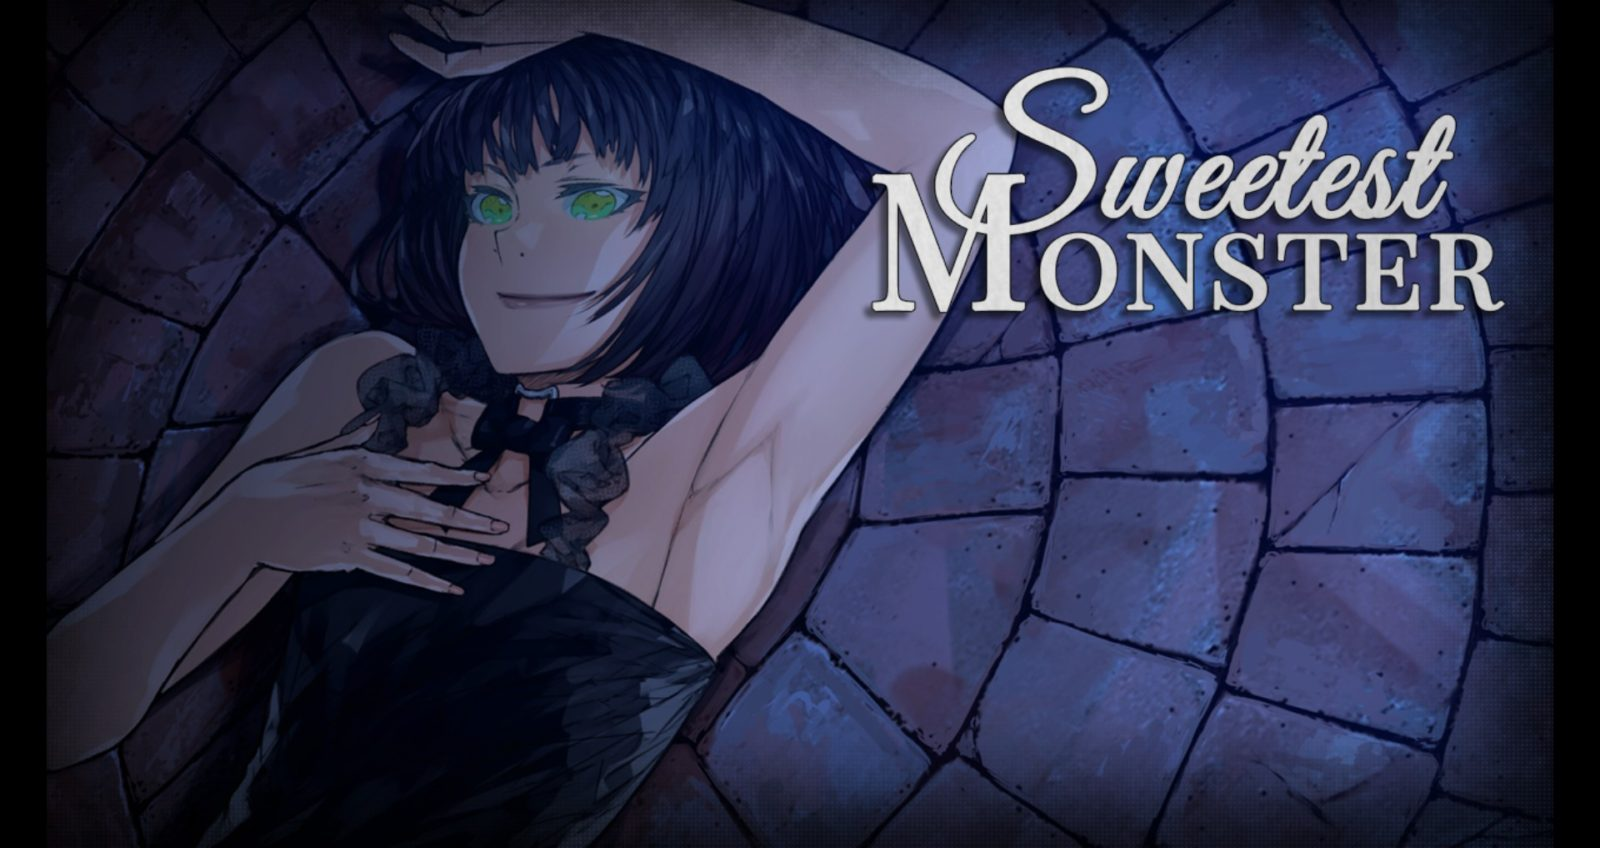 Sweetest Monster Main pic